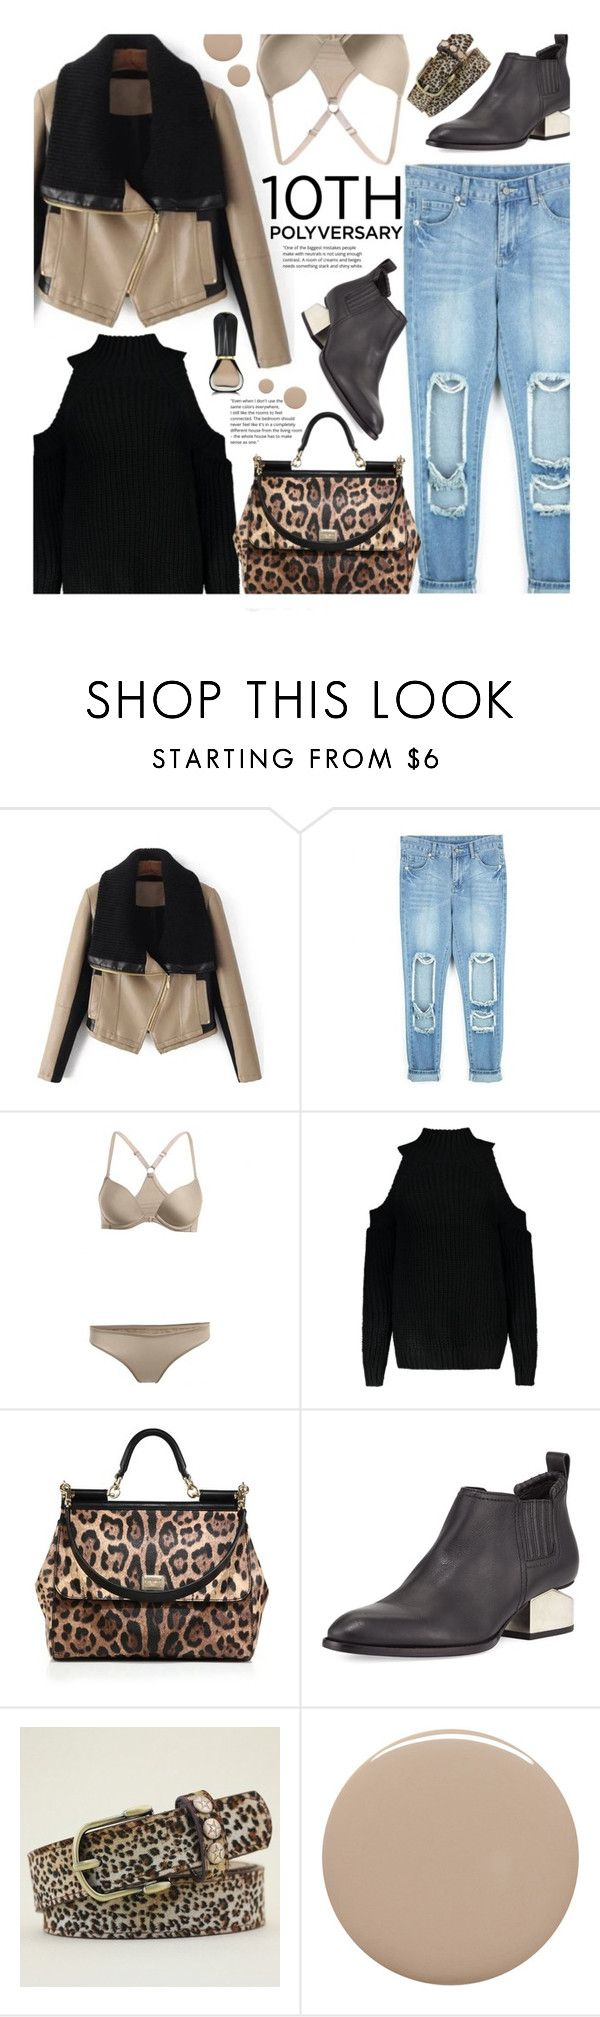 """Street Style: Distressed Denim"" by beebeely-look ❤ liked on Polyvore featuring Dolce&Gabbana, Alexander Wang, Deborah Lippmann, Oribe, LeopardPrint, streetwear, distresseddenim, StreetSyle and twinkledeals"